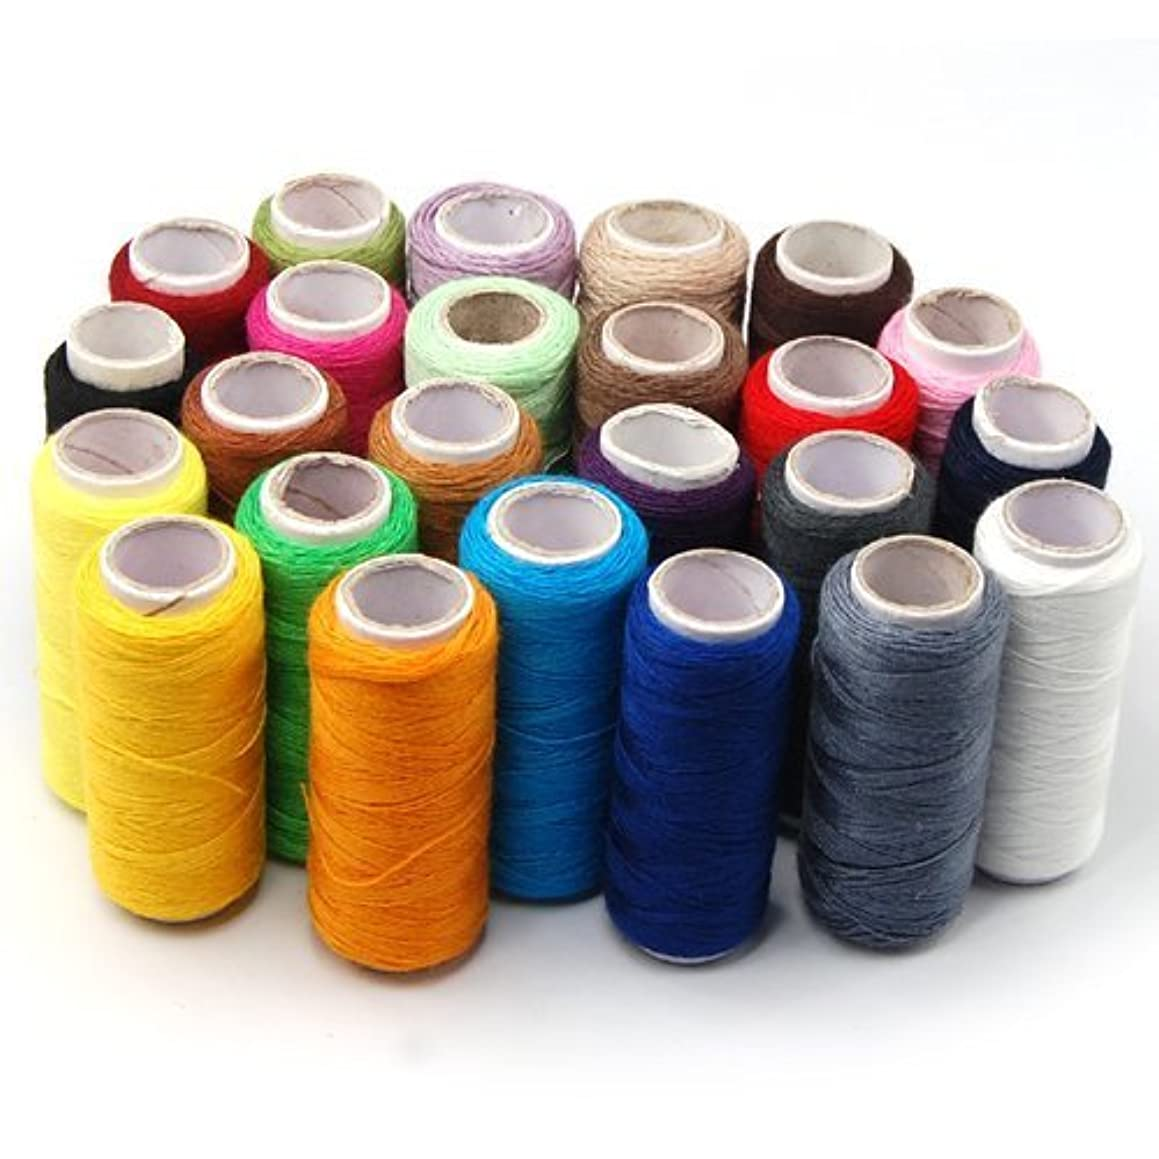 ZXUY 24 Assorted Spools Polyester Sewing Thread Full Size